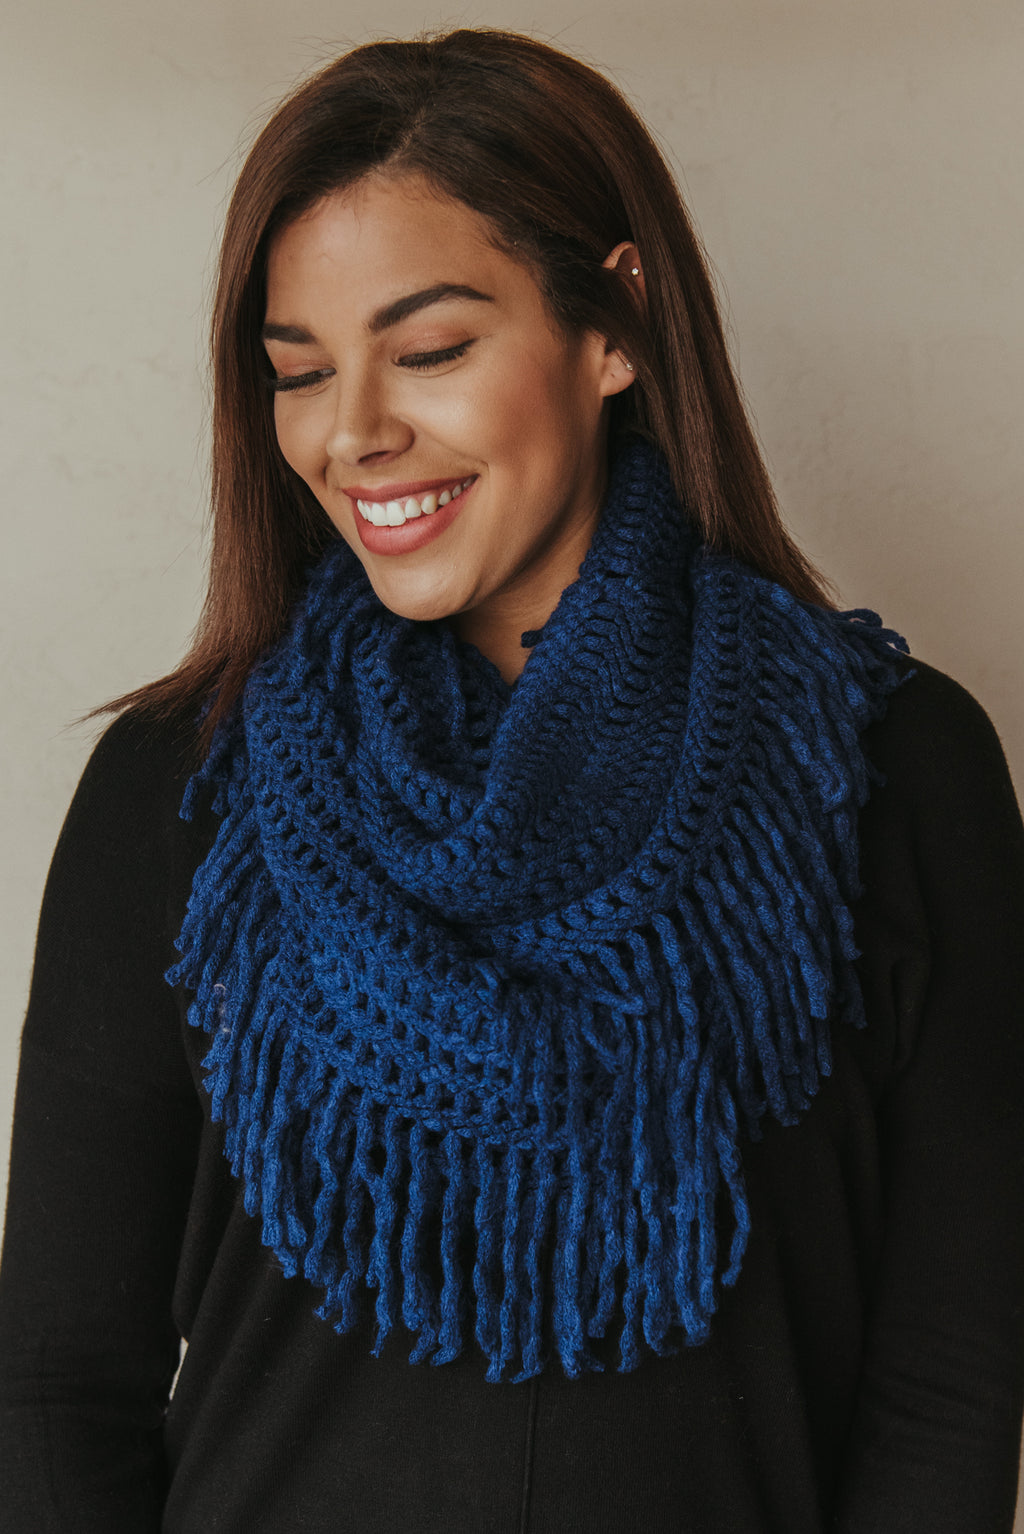 Lattice Tassel Infinity Scarf ~ Navy - J. Lilly's Boutique